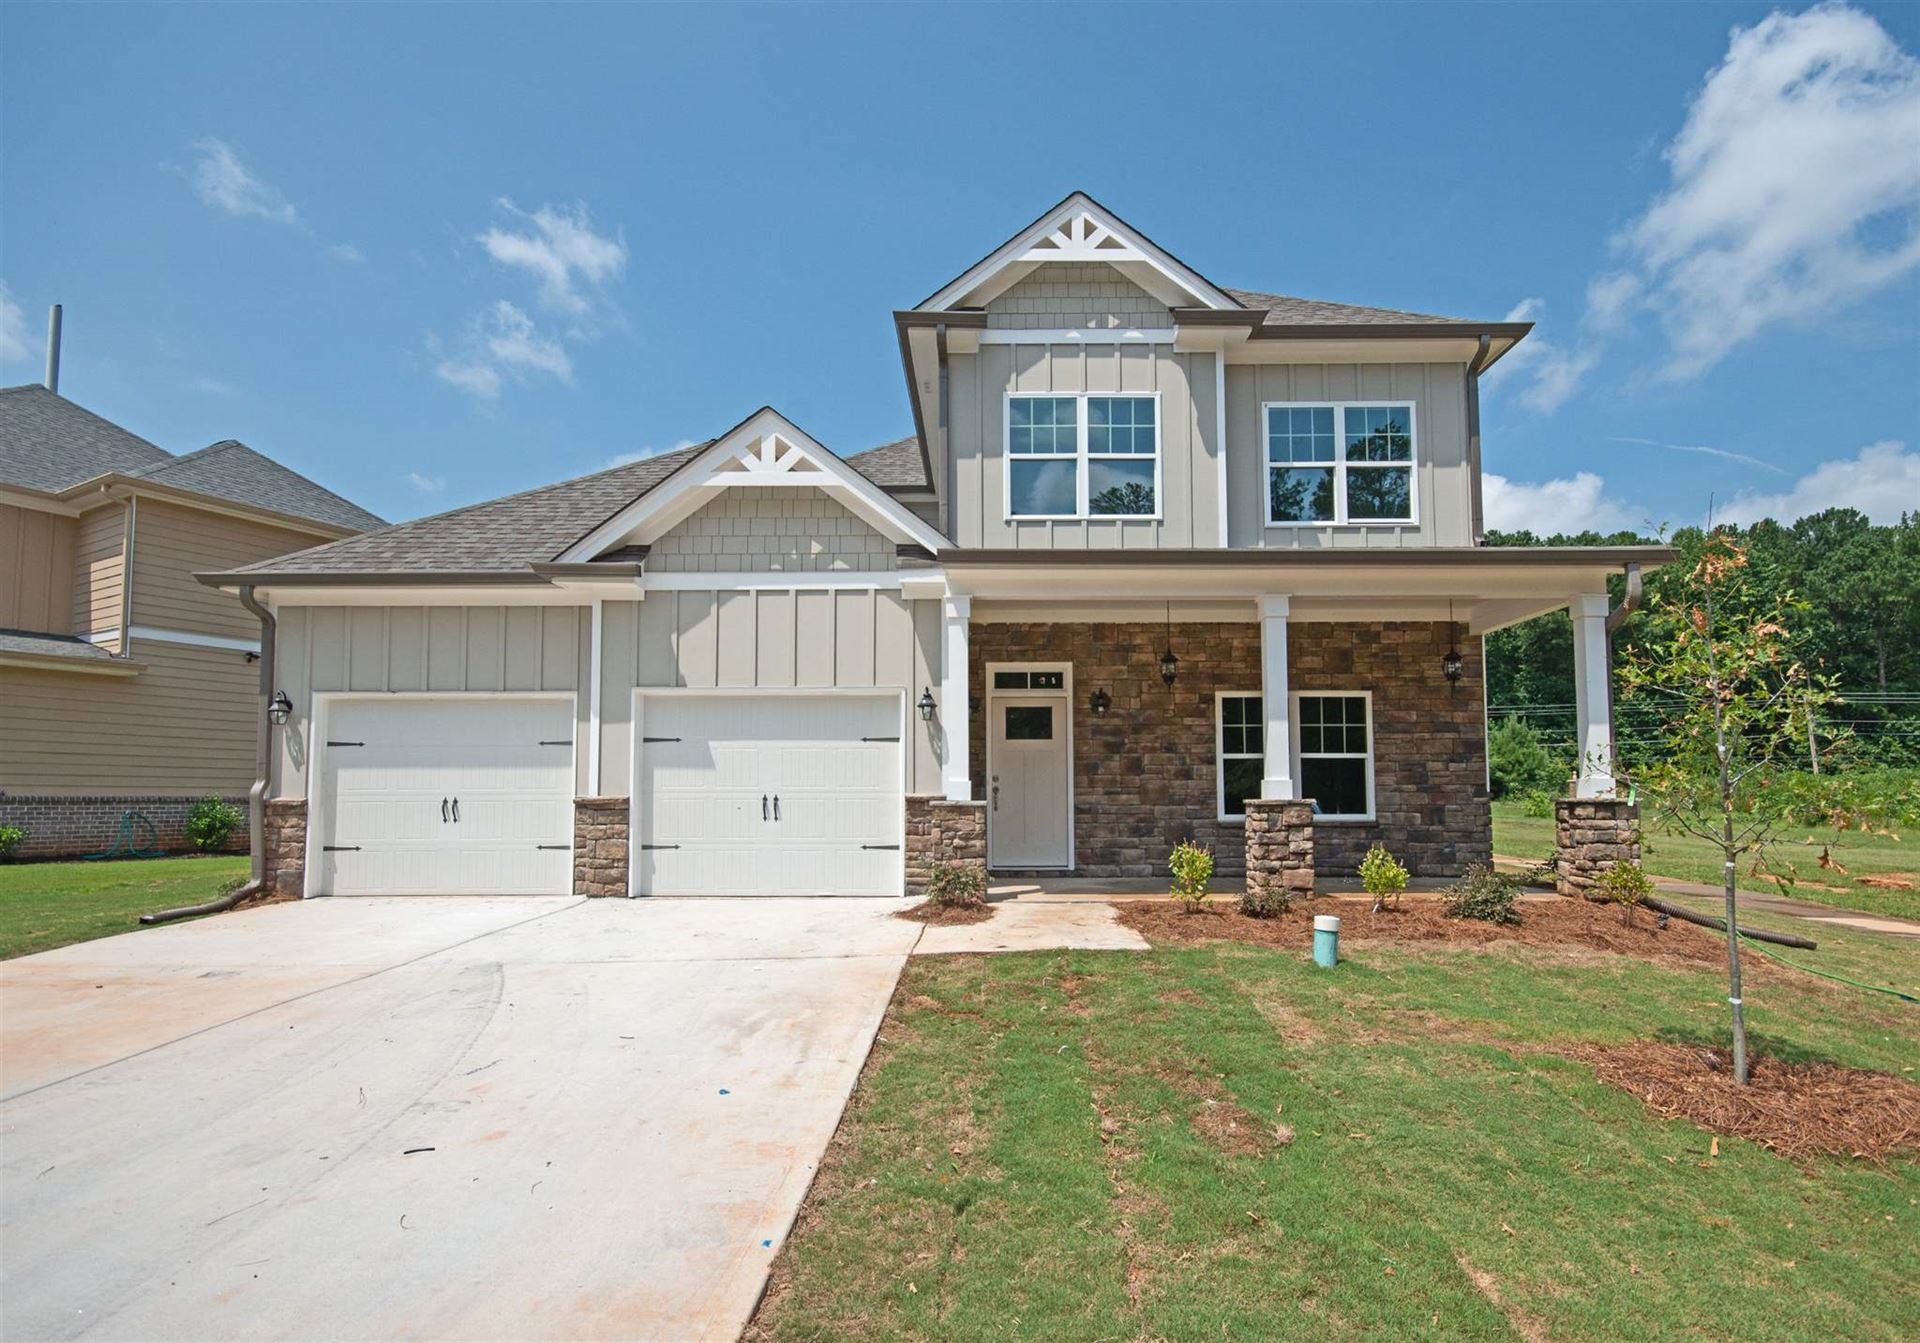 1826 Treymire Ct, Stone Mountain, GA 30088 - #: 8868029